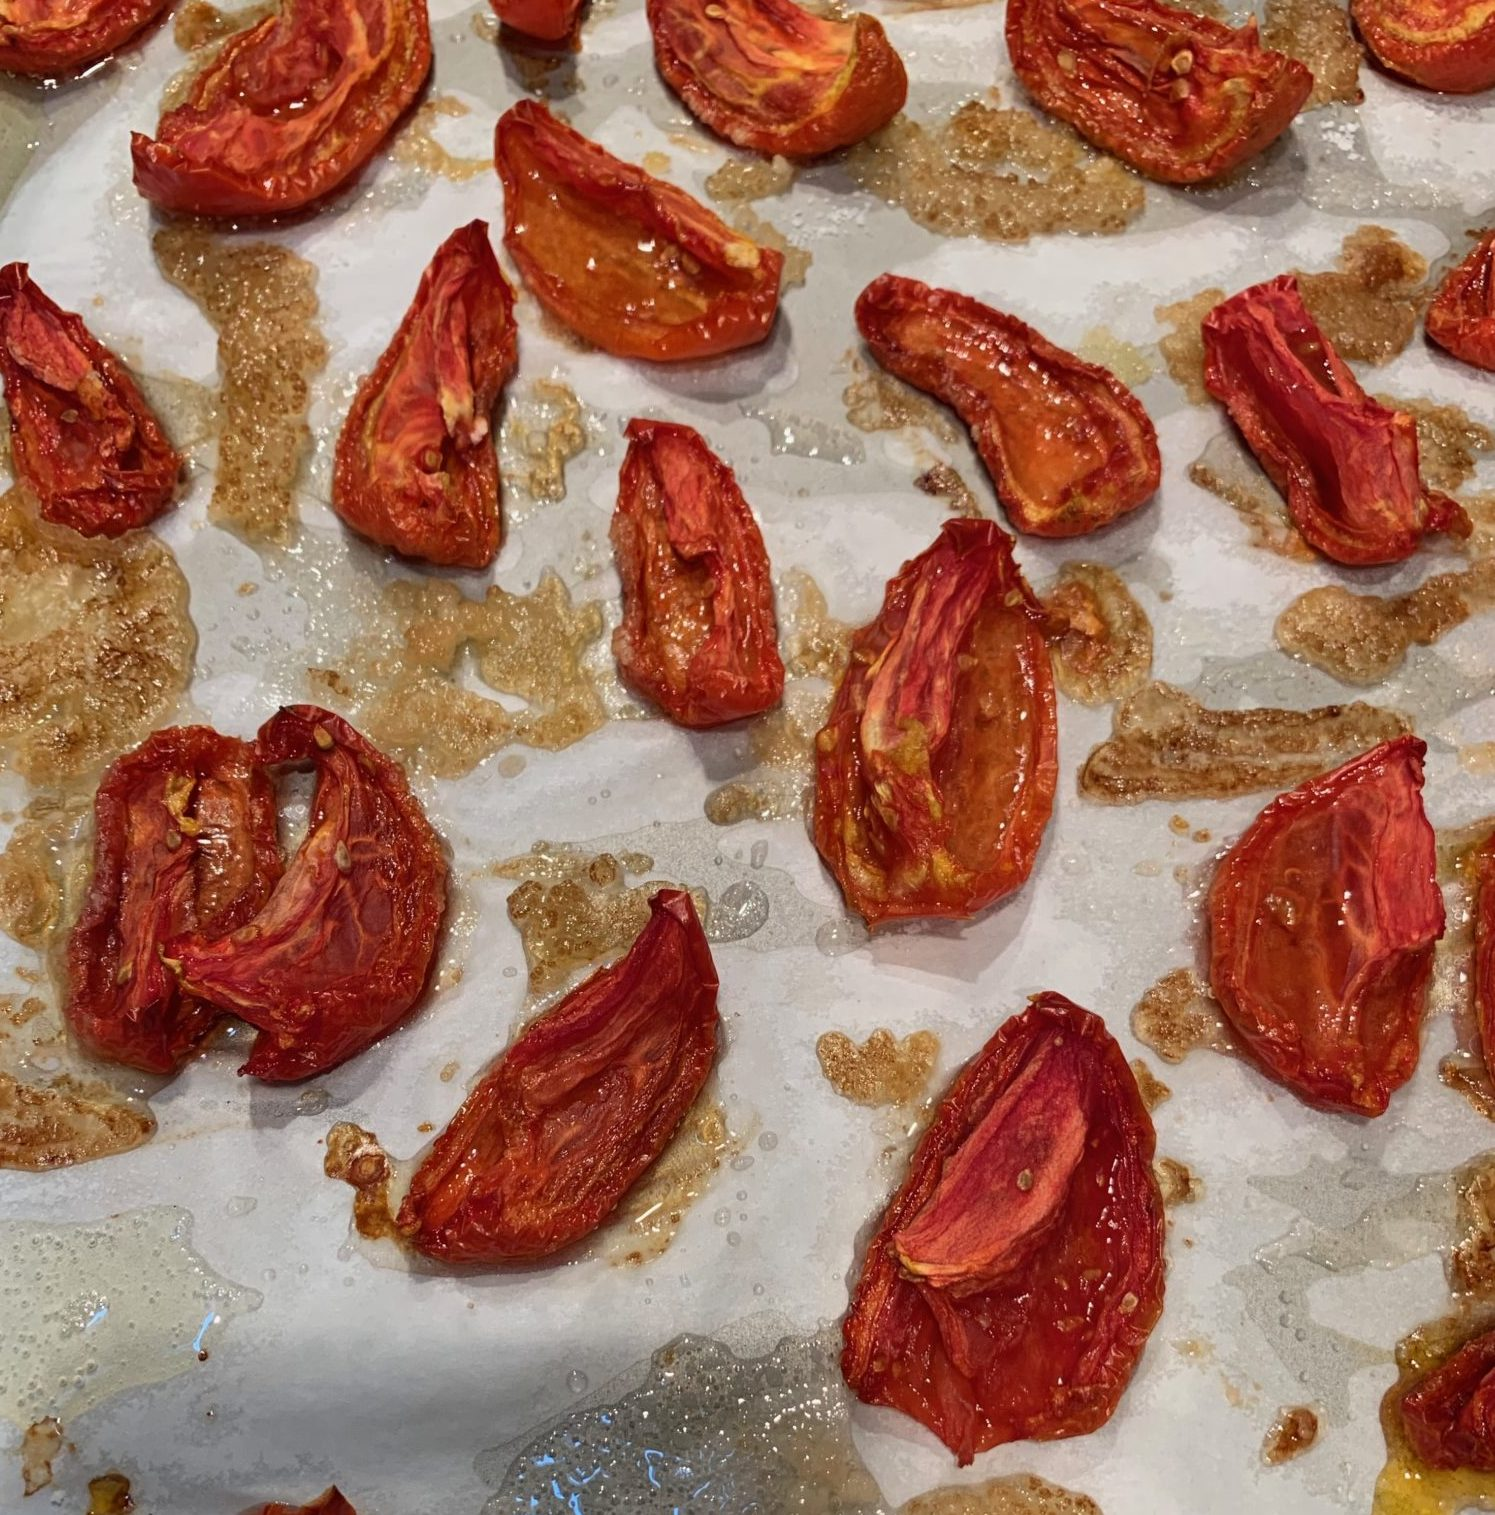 Slow roasted tomatoes will be dried but soft